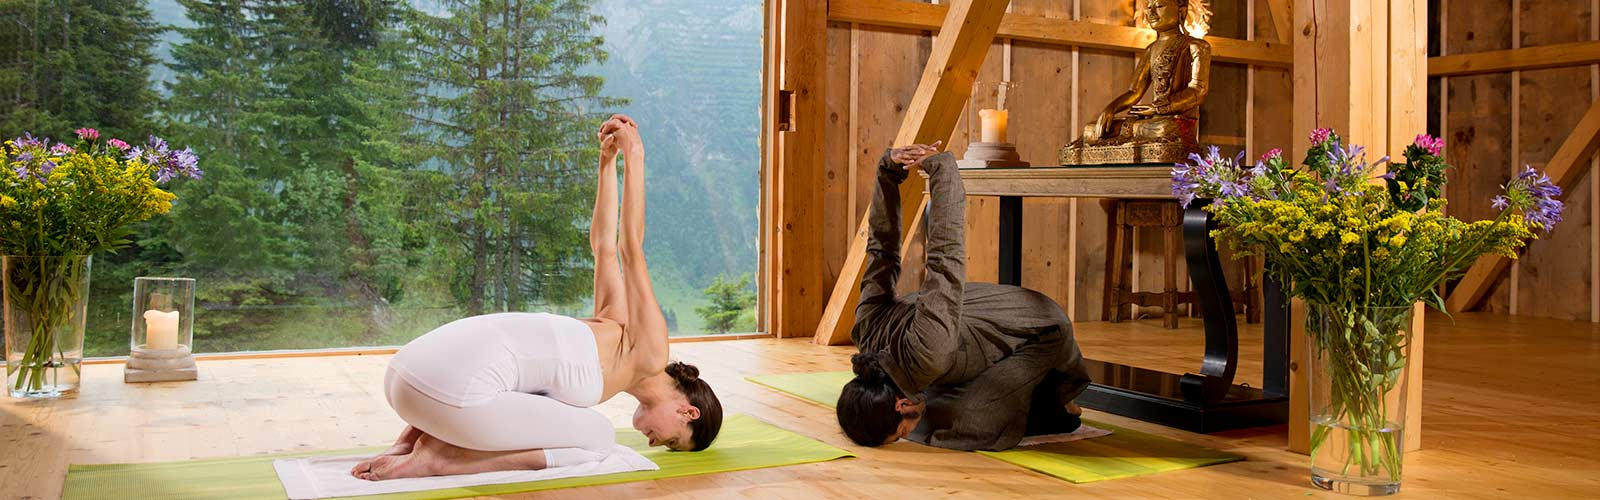 Hatha Yoga in Lech am Arlberg